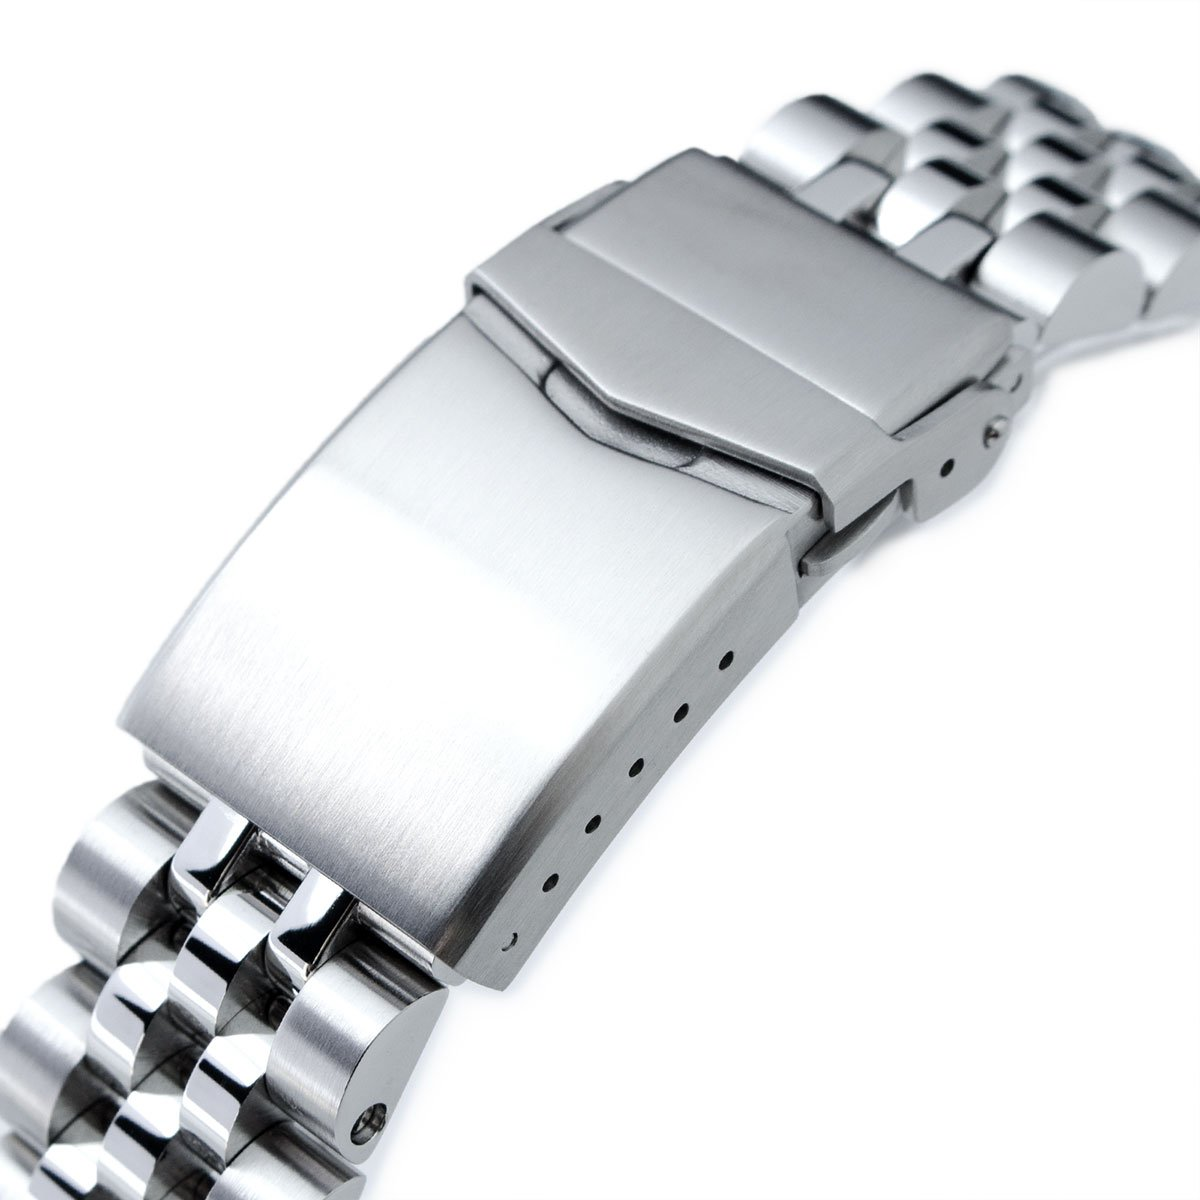 20mm Angus Jubilee 316L SS Watch Bracelet for Seiko Alpinist SARB017, V-Clasp by Seiko Replacement by MiLTAT (Image #3)